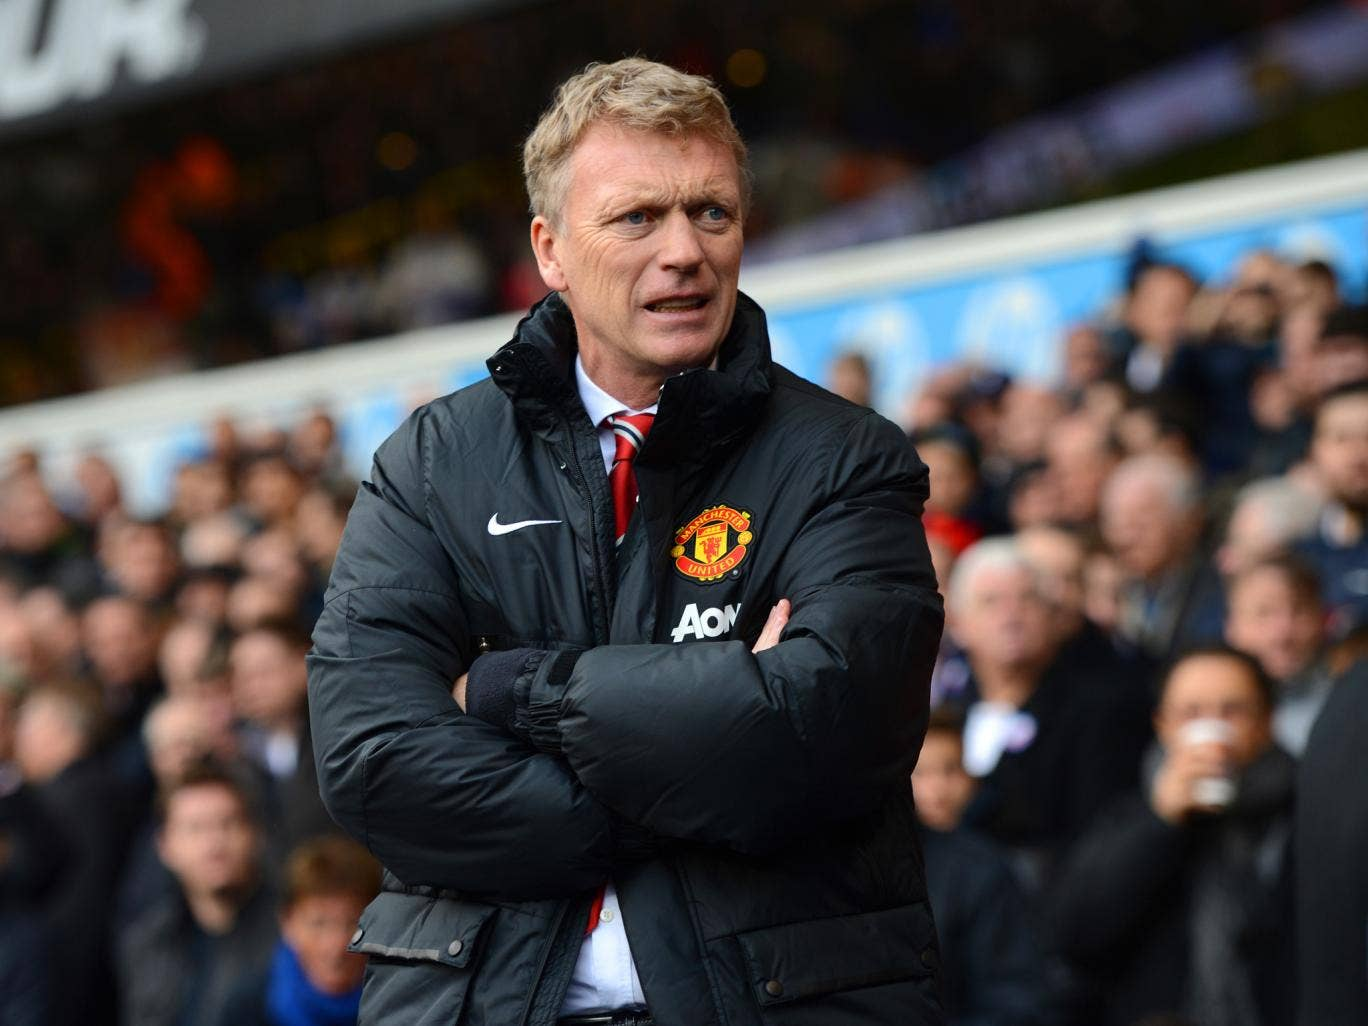 Manchester United manager David Moyes has praised his replacement at Everton Roberto Martinez